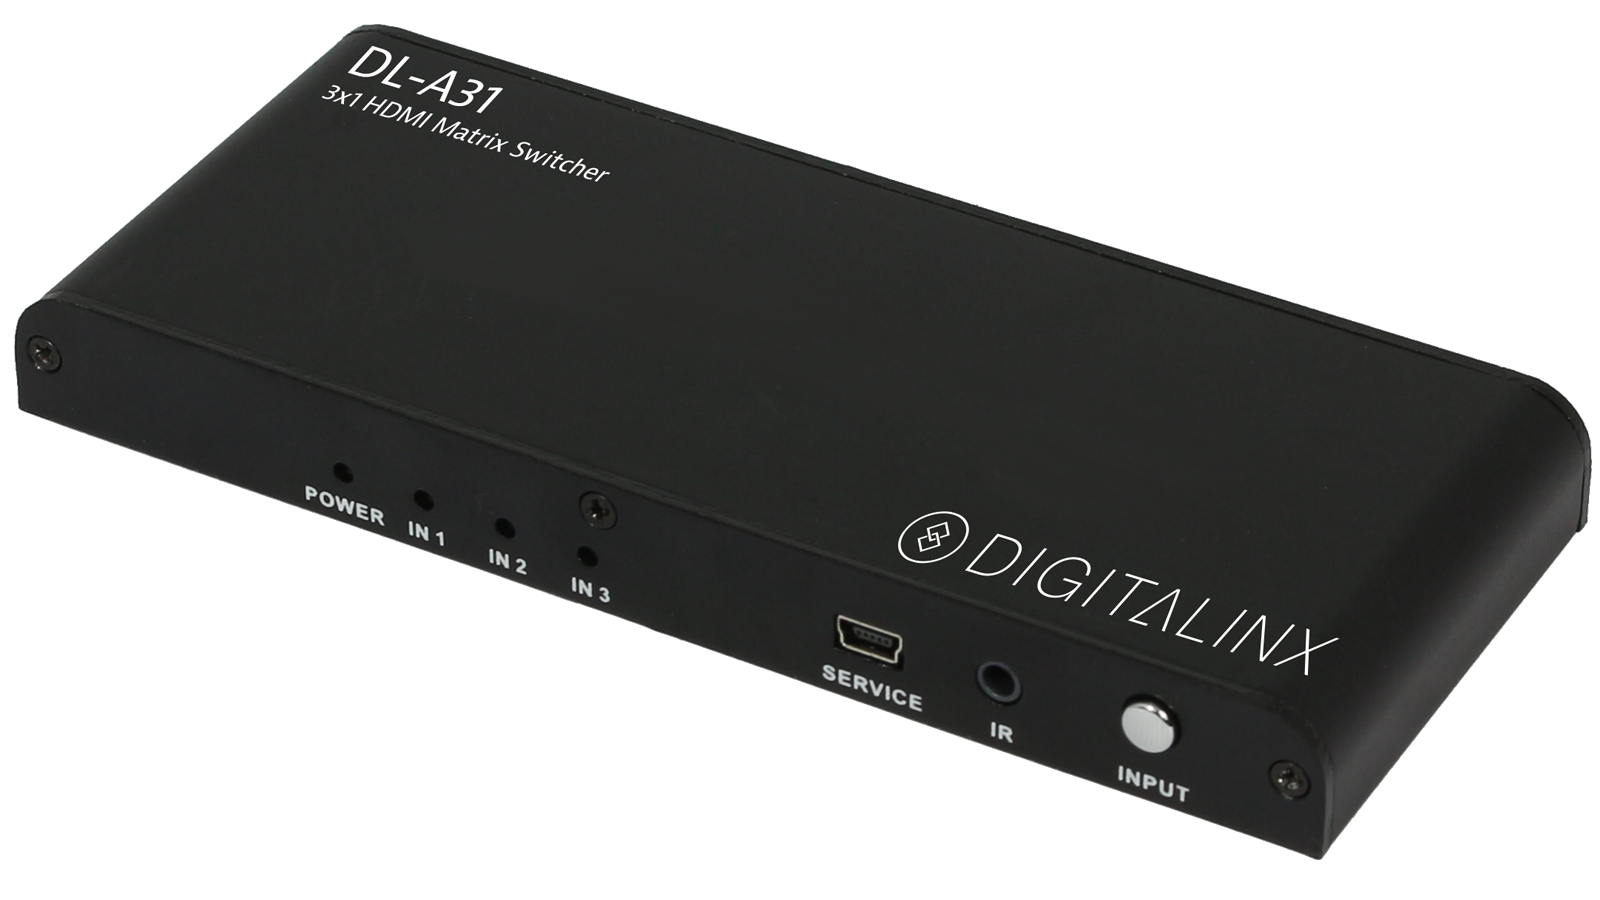 Dl A31 Digitalinx Brand By Liberty Hdmi 3x1 Matrix Switch Adjustment Power Supply Values 12515v Max Current 05 Amps